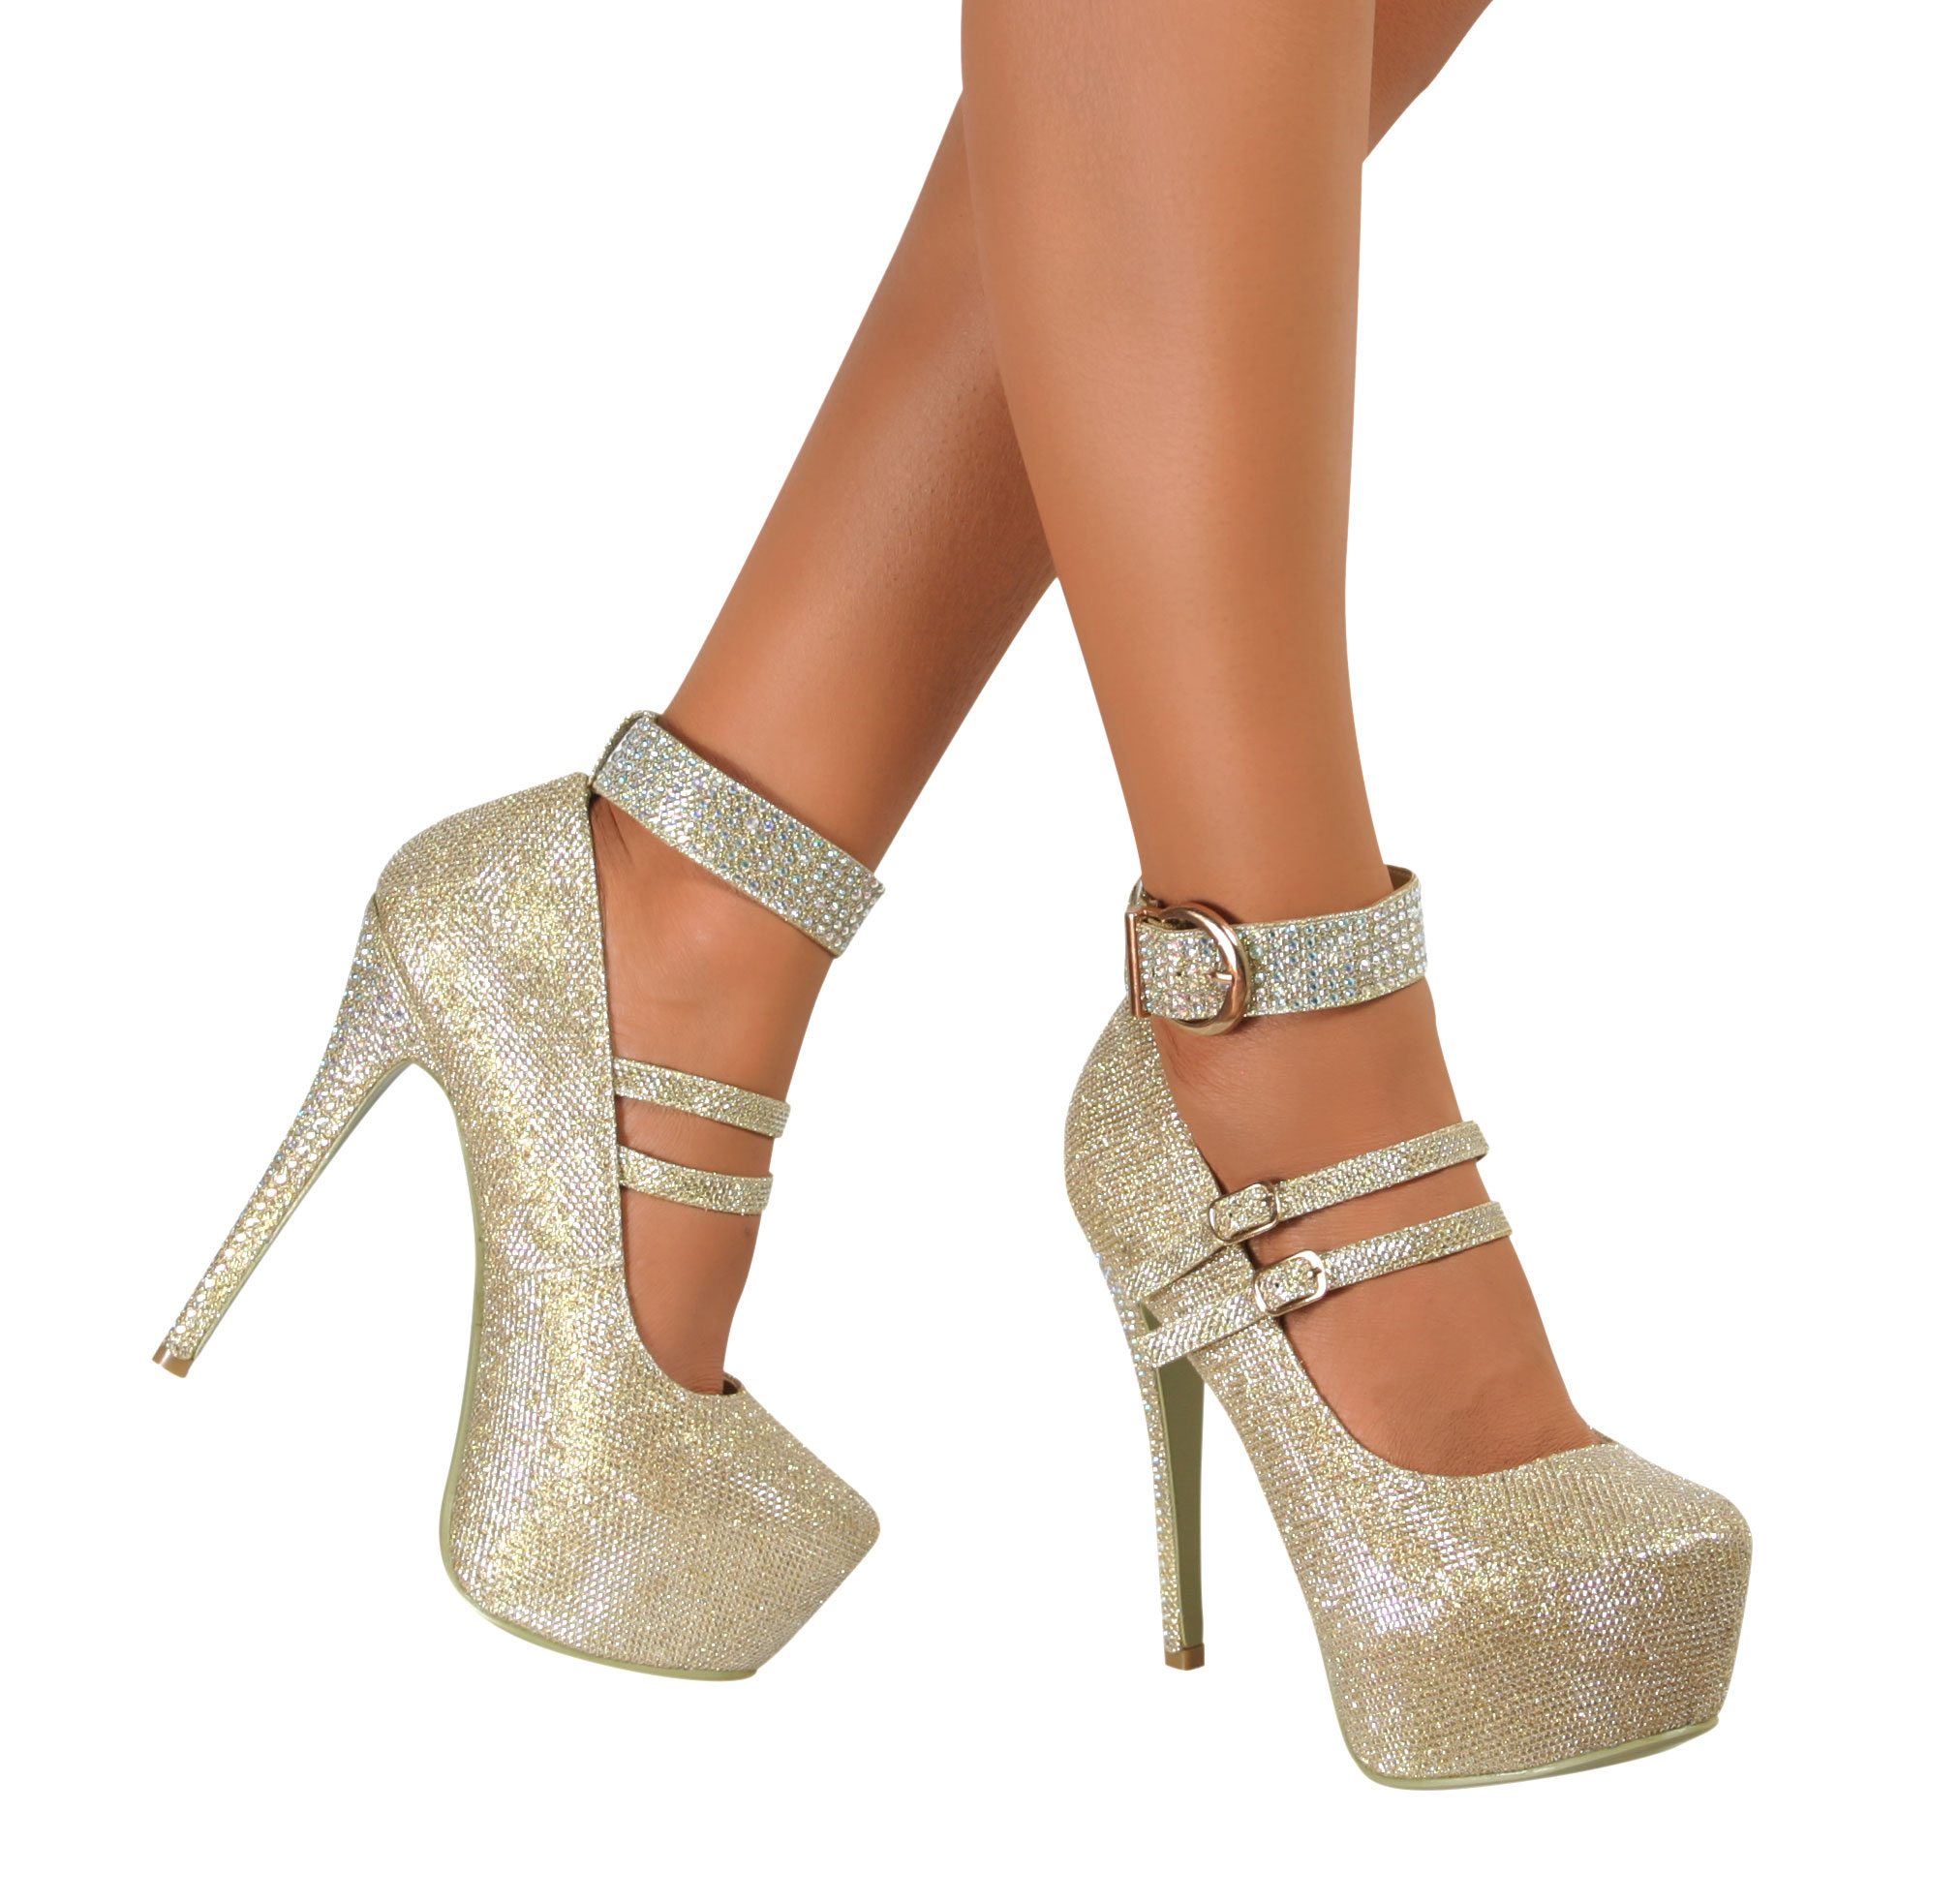 Womens Platform High Heels Glitter Diamante Ankle Strap Buckle ...